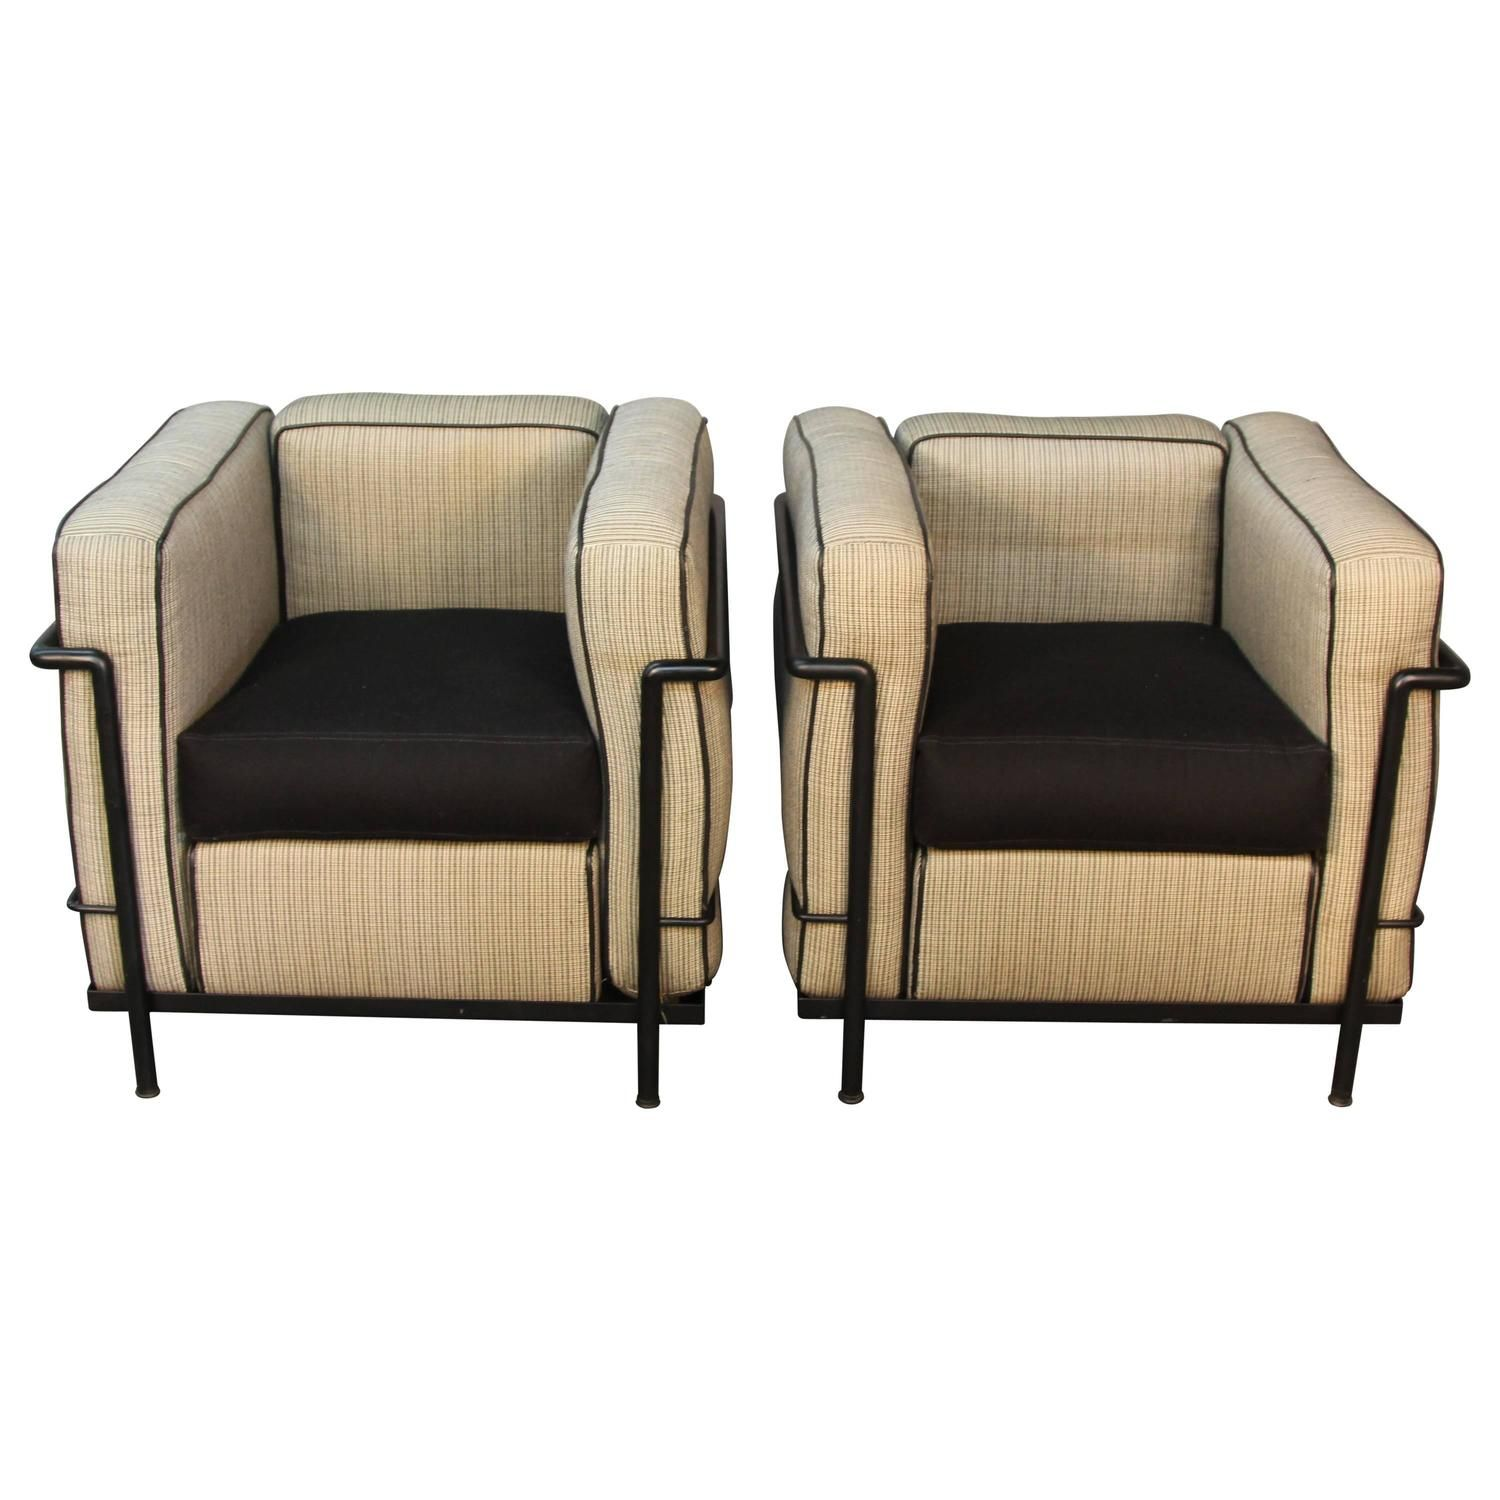 Pair Of Lc2 Le Corbusier Chairs With Black Frames Chair Le Corbusier Chair Leather Furniture